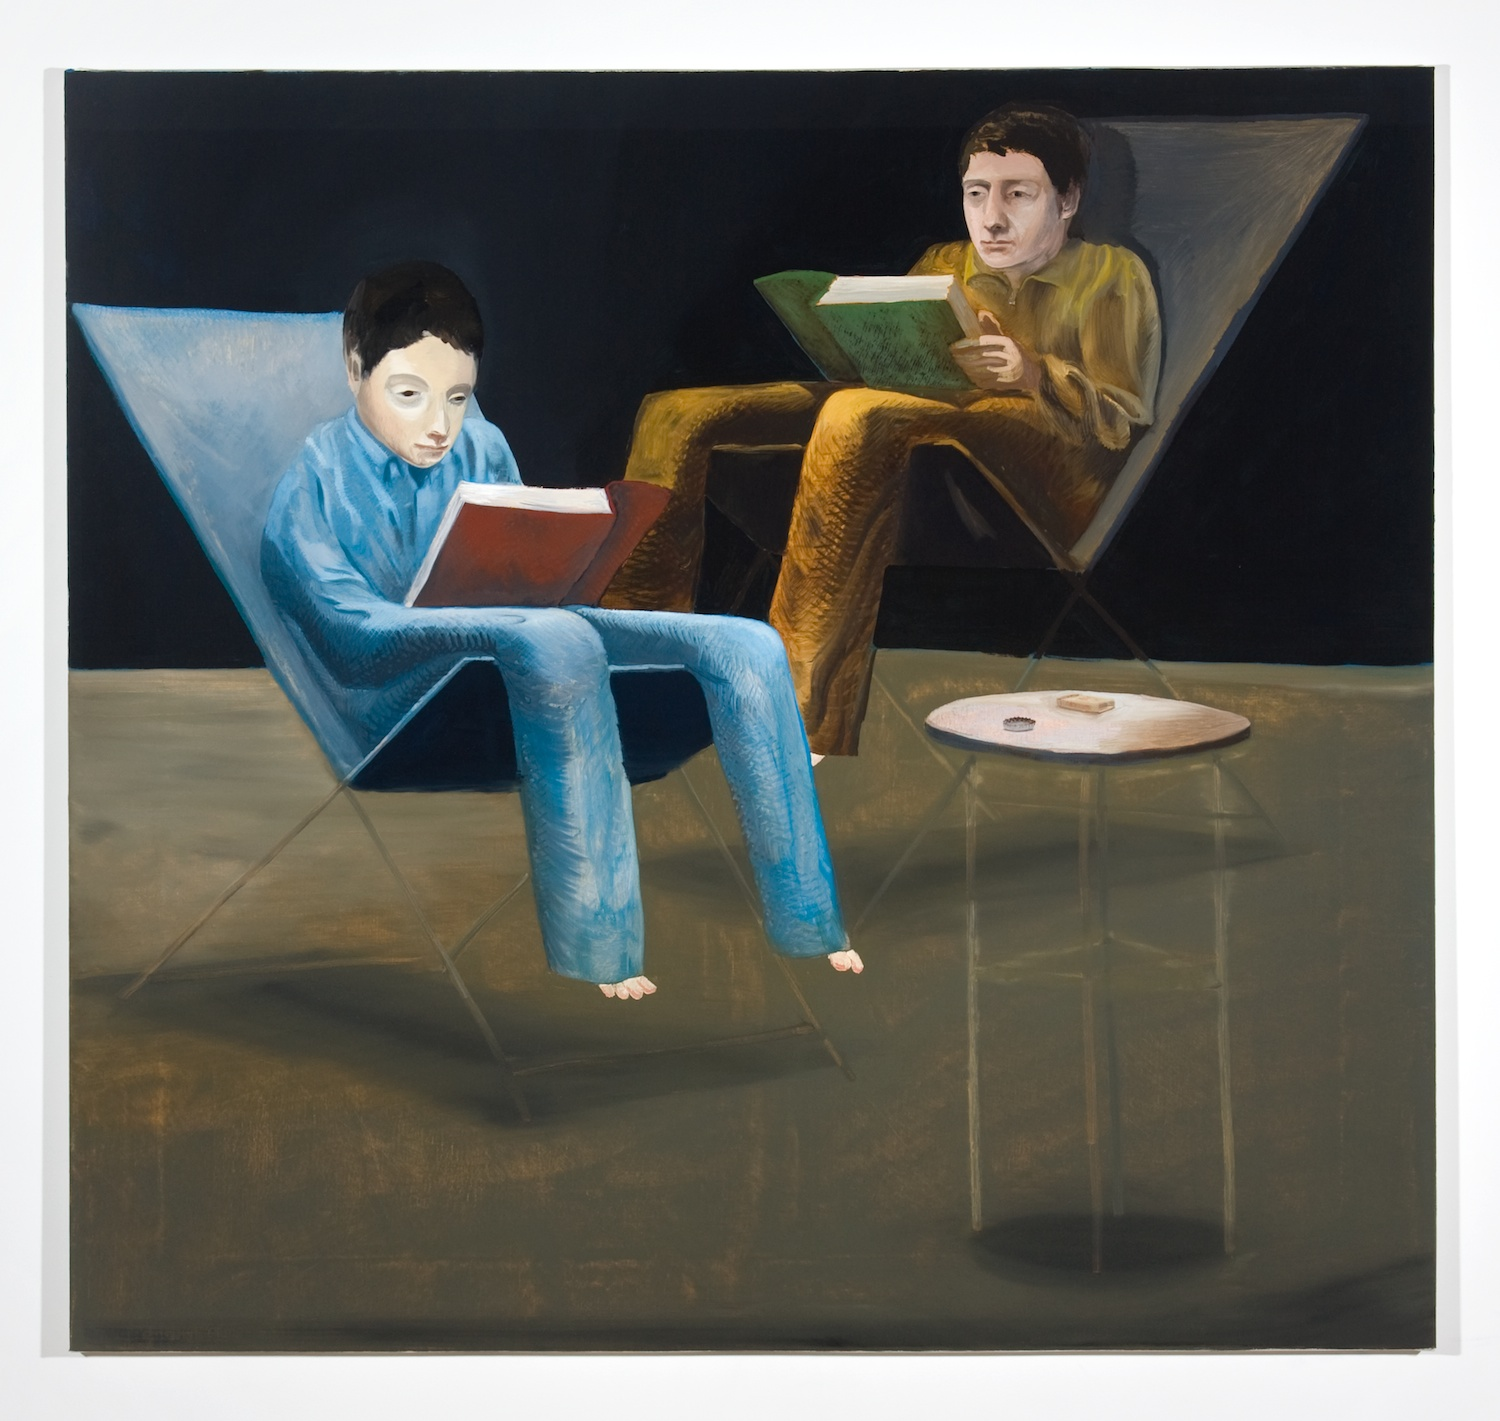 Jesse Chapman  The Principles of Psychology  2008 OIl on linen 39 ½h x 42w in JC014